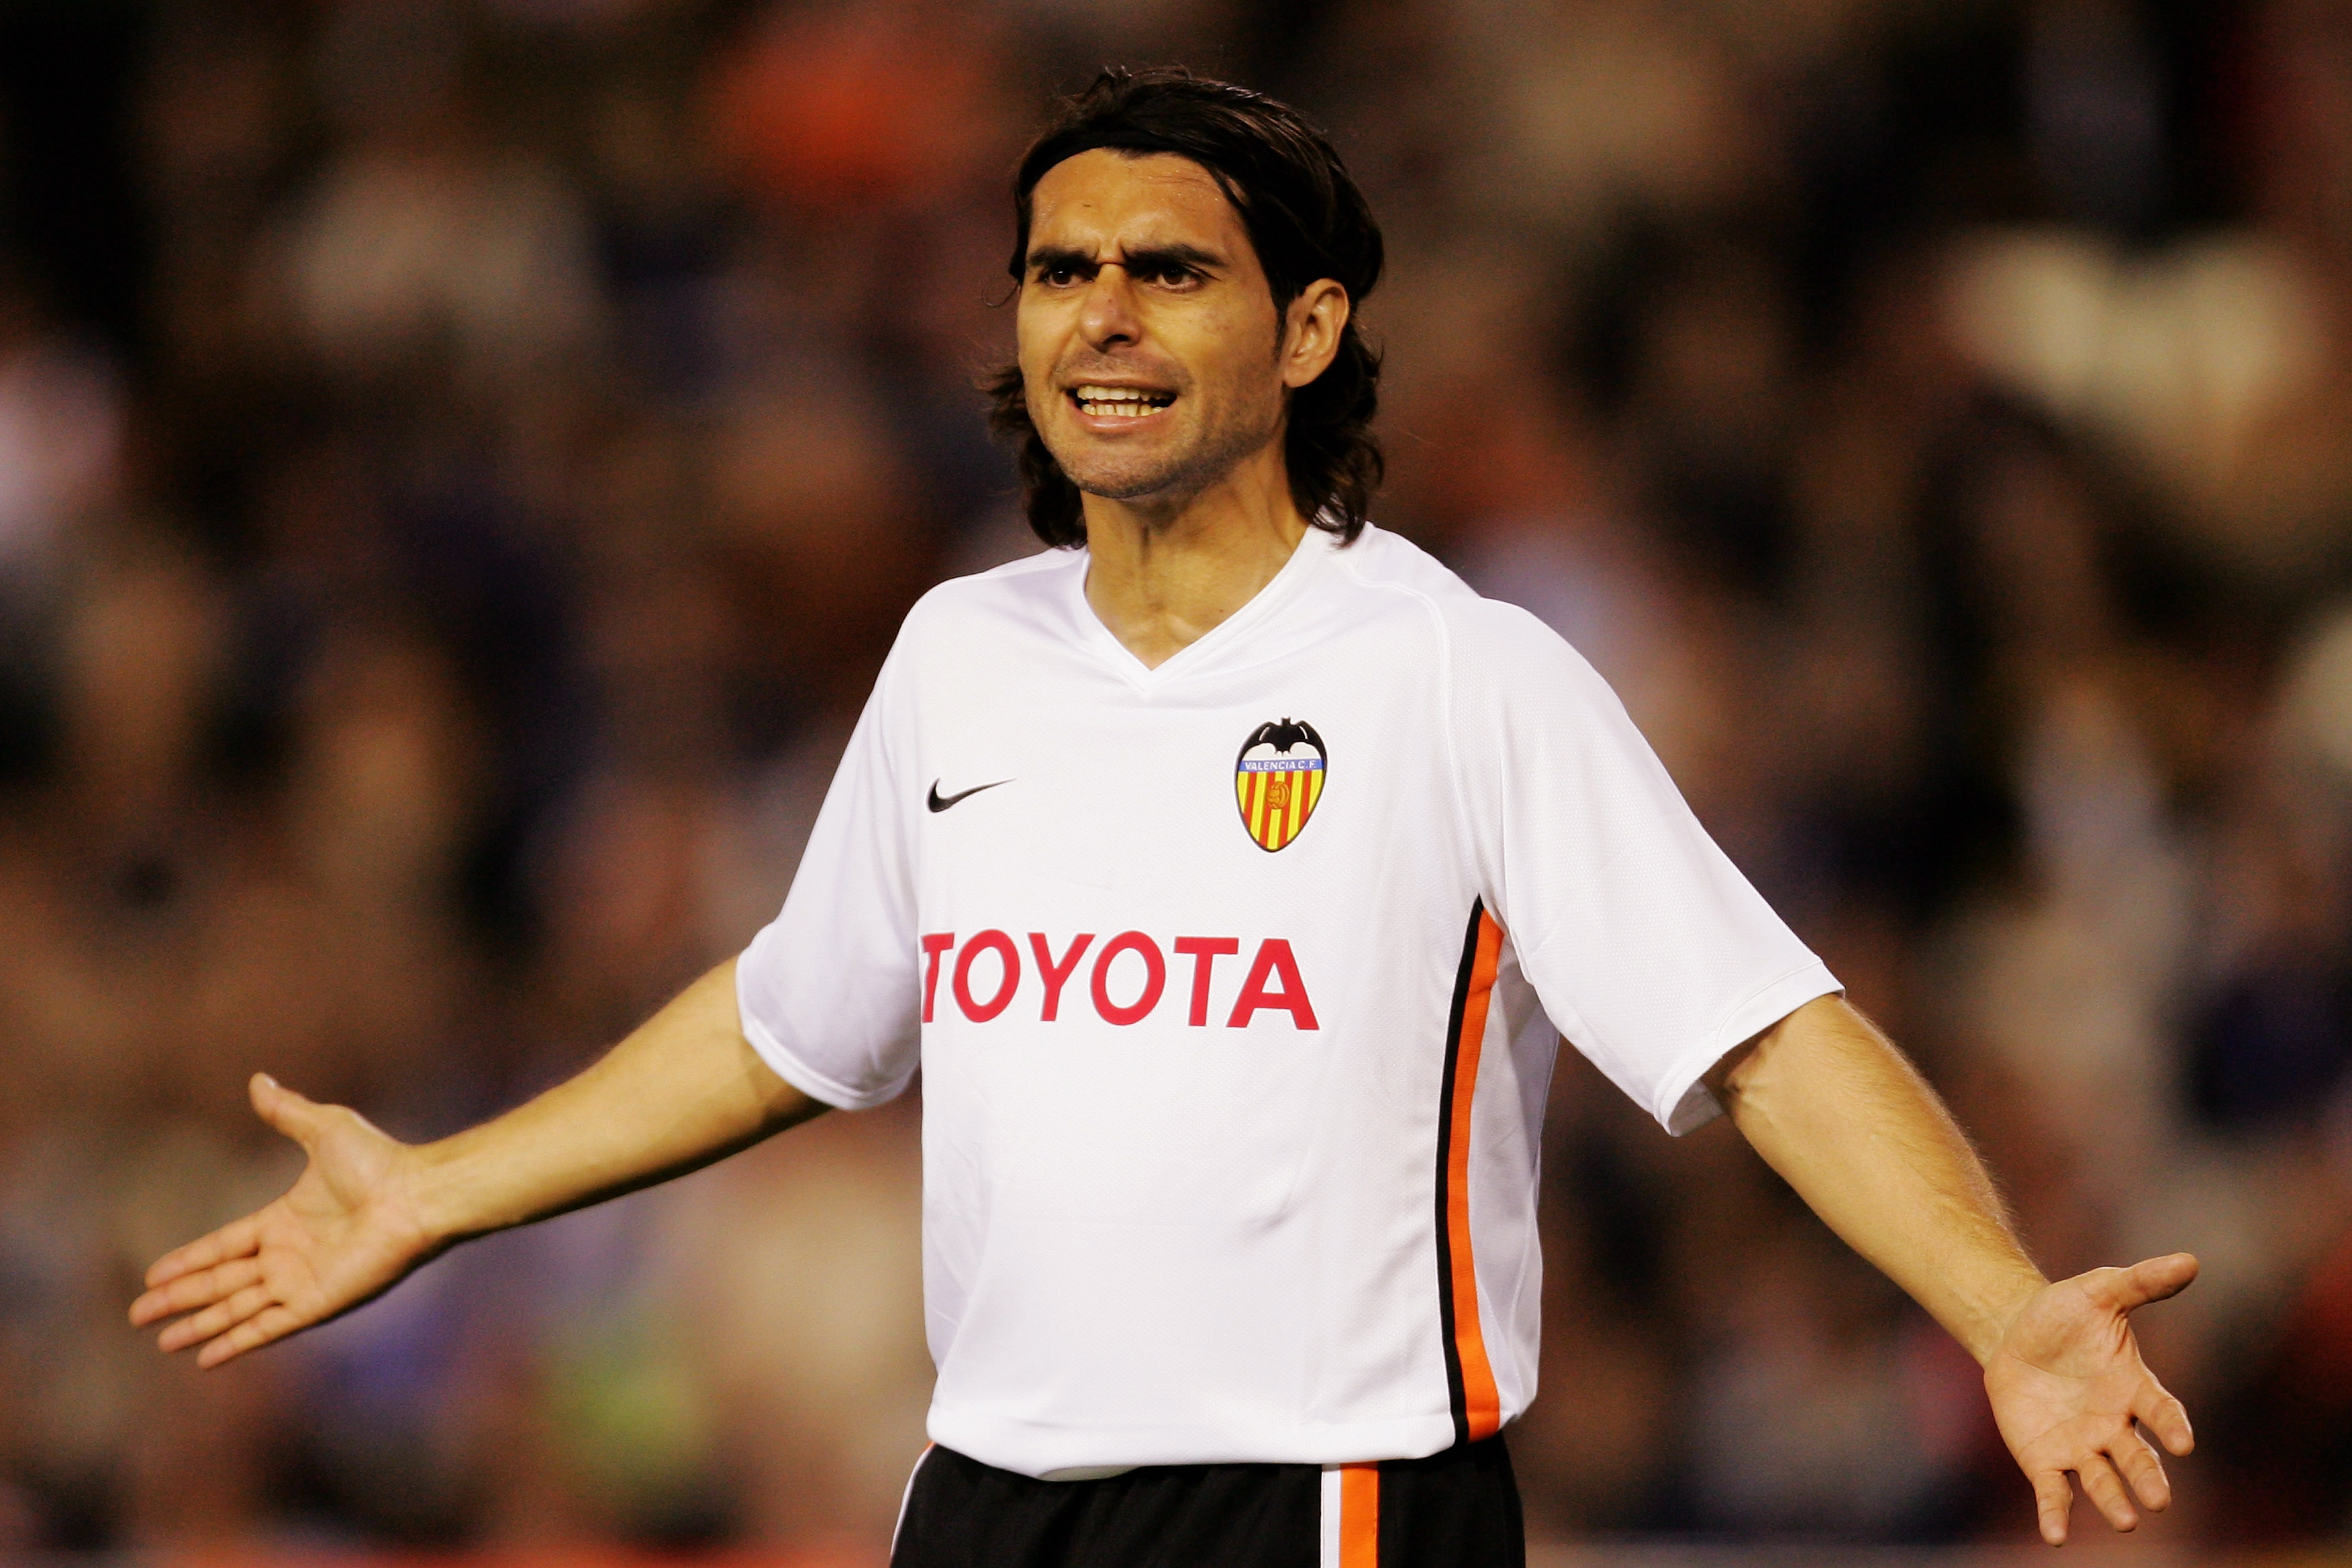 VALENCIA, SPAIN - APRIL 10:  Roberto Ayala of Valencia reacts during the UEFA Champions League quarter final, second leg match between Valencia and Chelsea at the Stadium Mestalla on April 10, 2007 in Valencia, Spain.  (Photo by Richard Heathcote/Getty Im